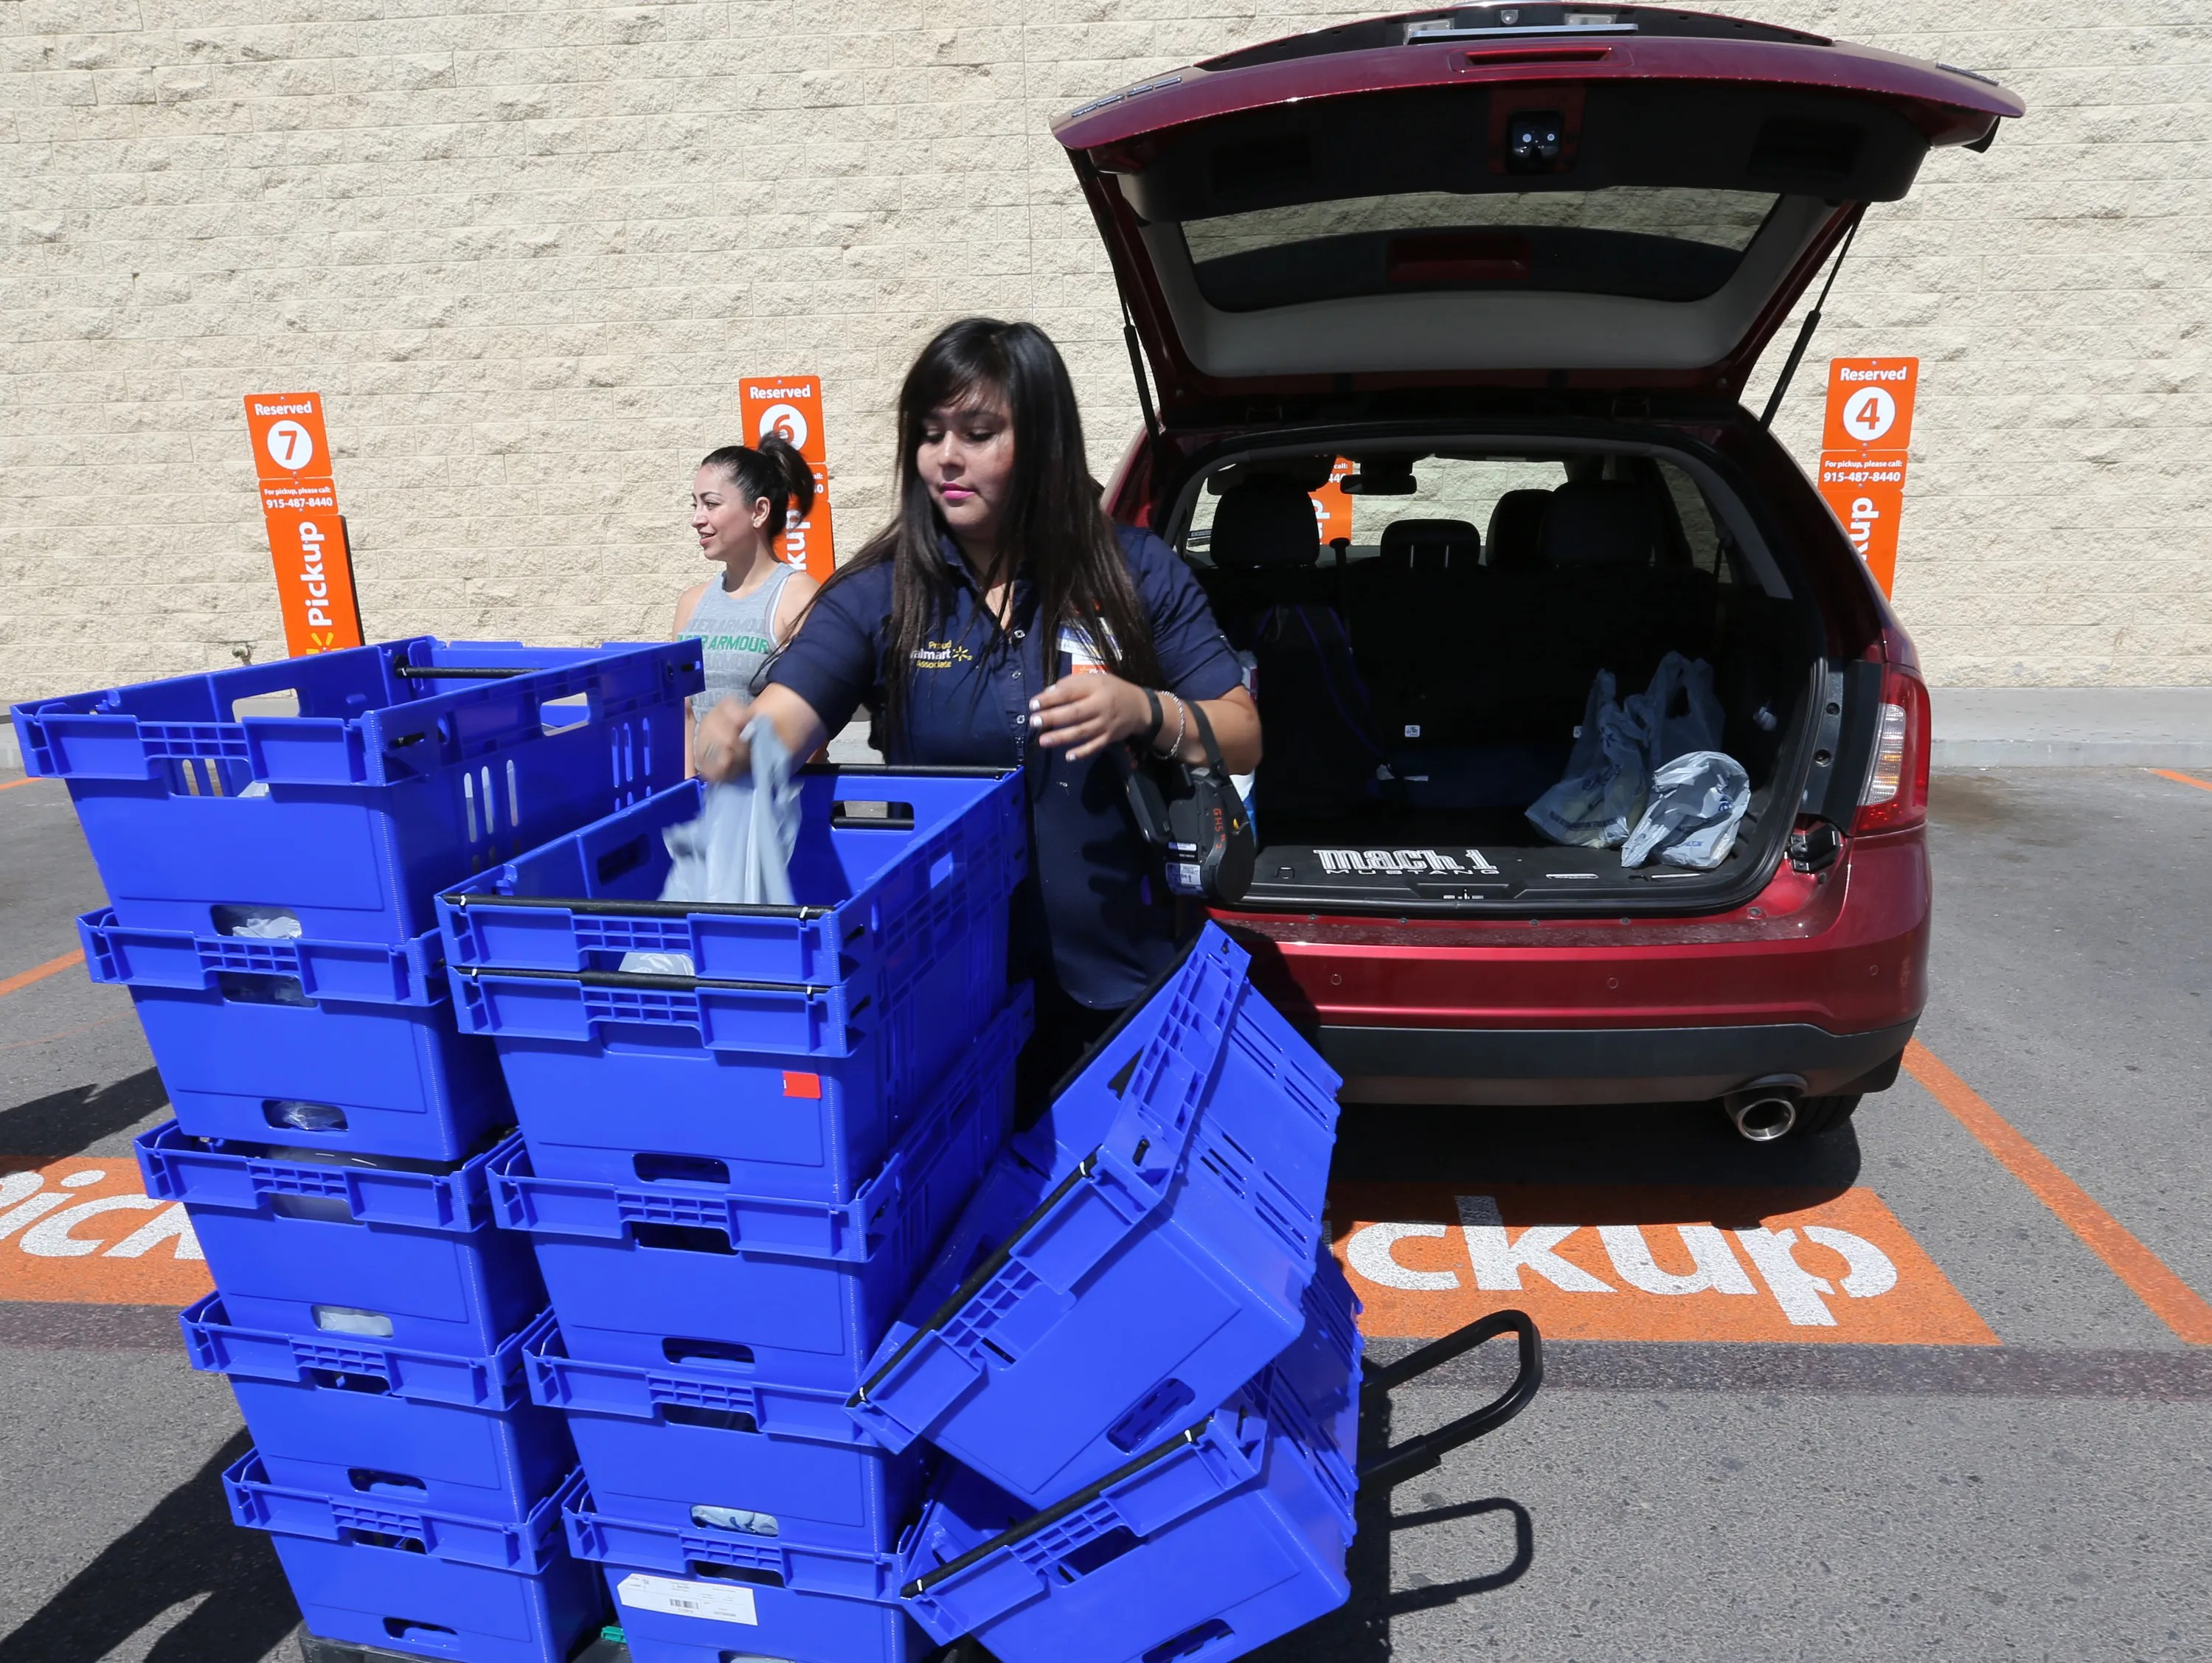 Wal Mart Offers New Grocery Pickup Service